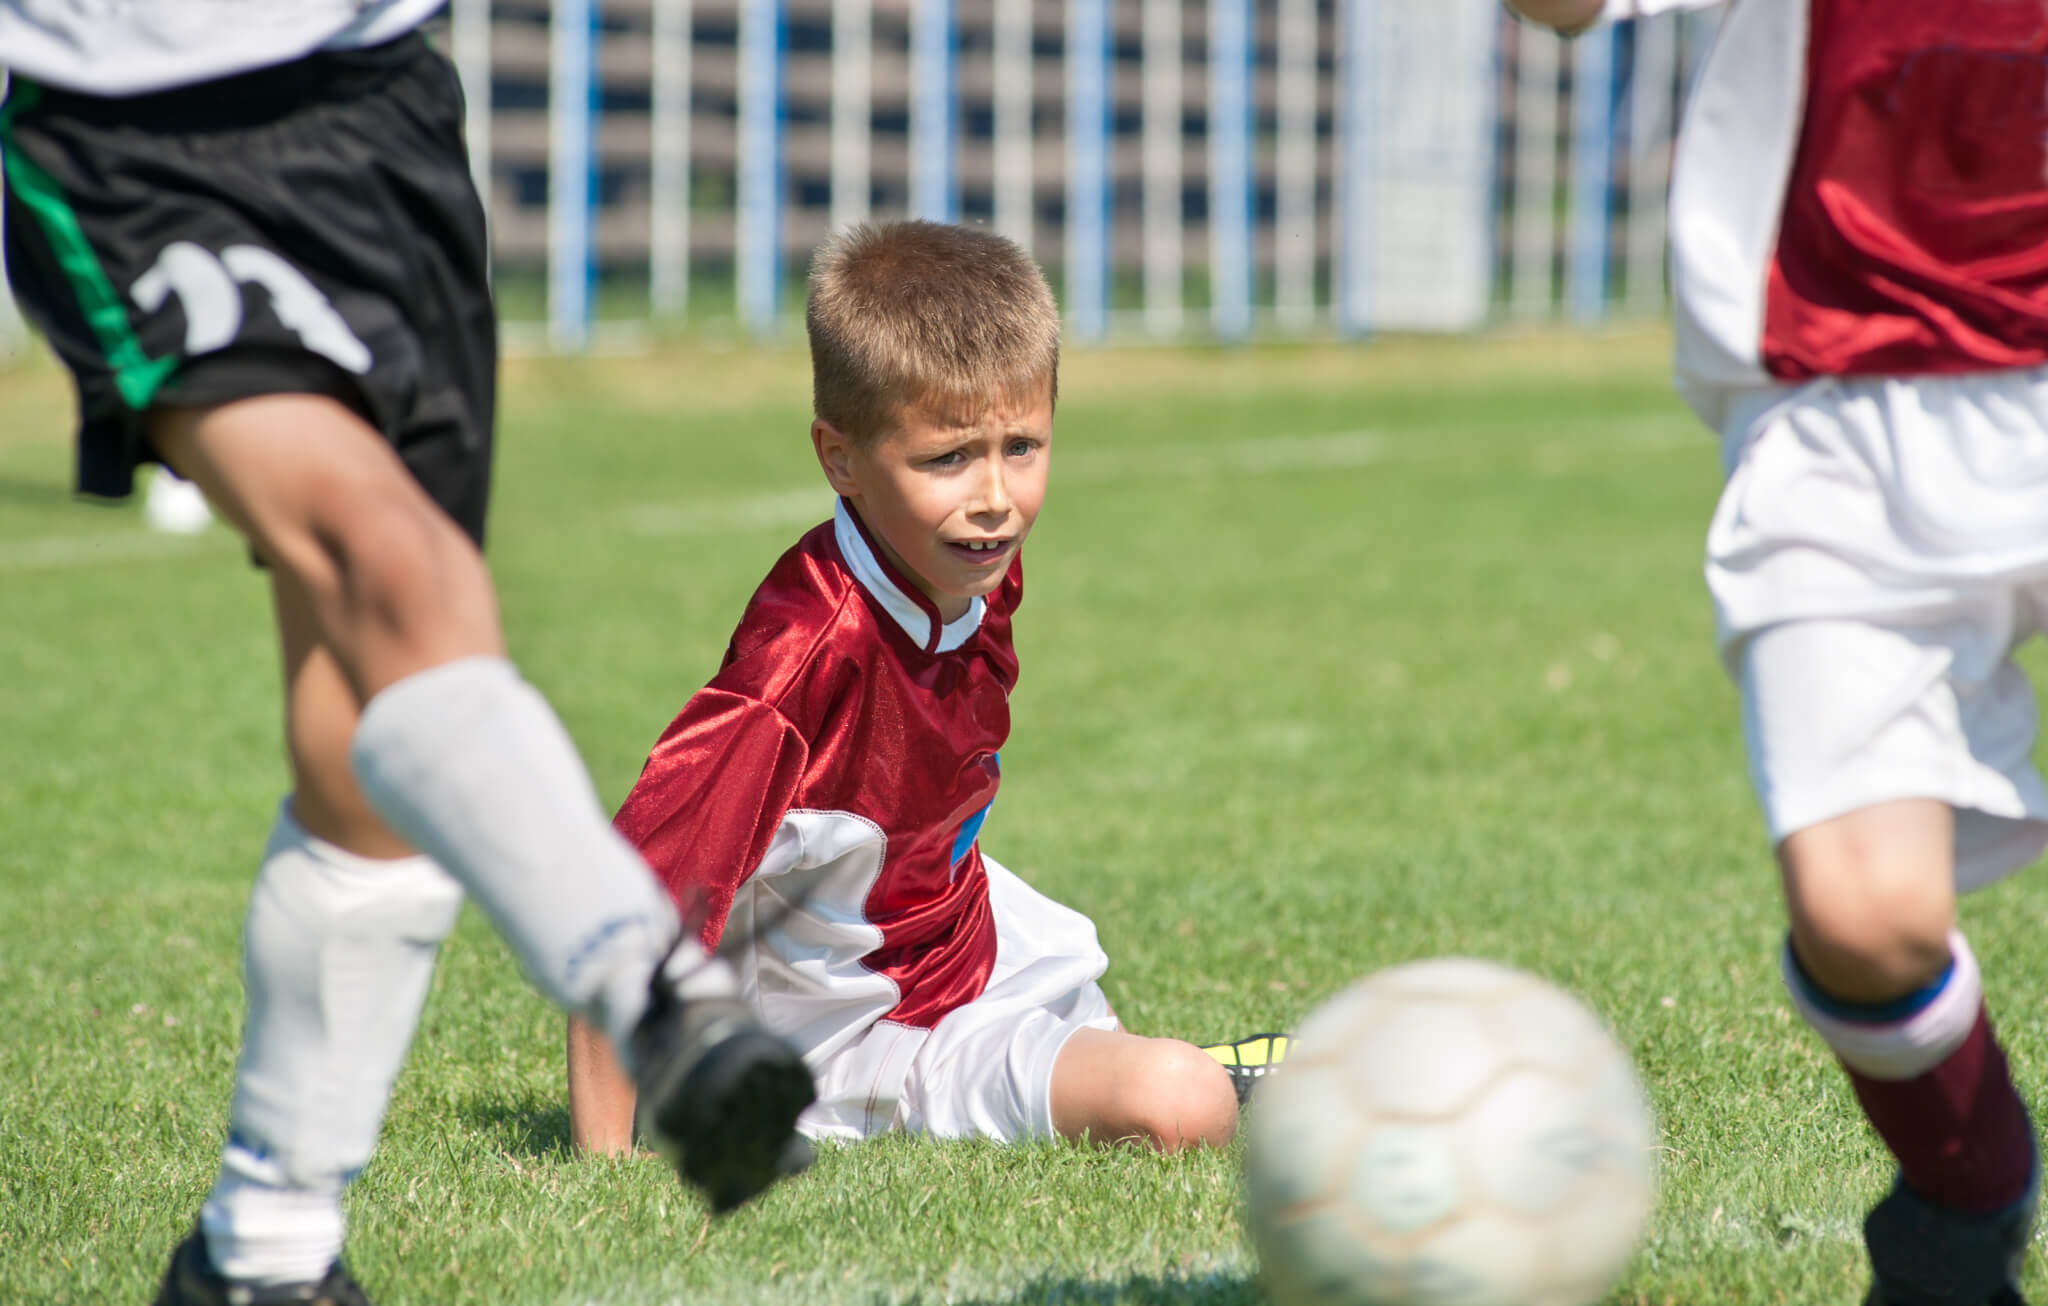 Three Ways Parents Can Help Manage their Athlete's Emotions